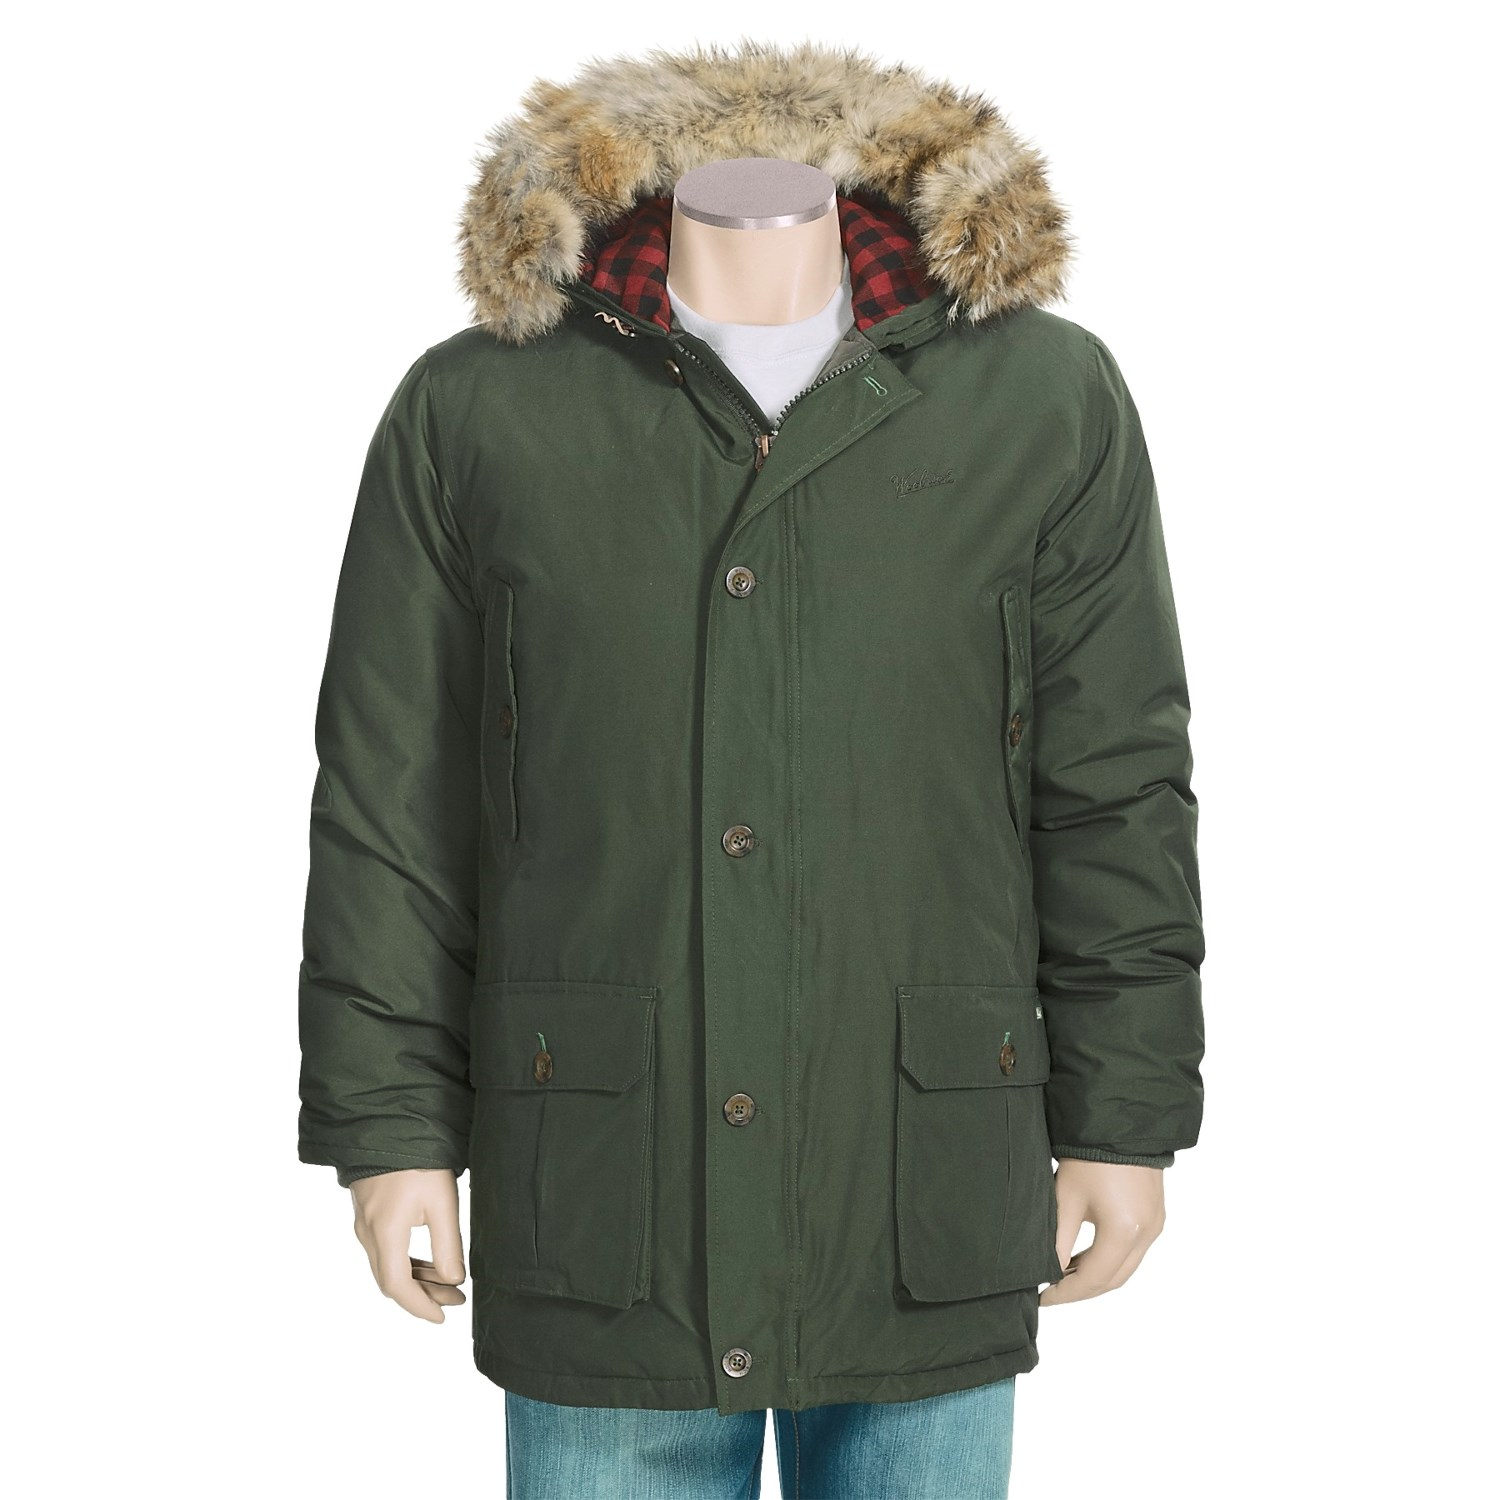 woolrich guys 1-16 of 35 results for woolrich parka men showing most relevant results see all results for woolrich parka men woolrich john rich & bros men's arctic parka df.